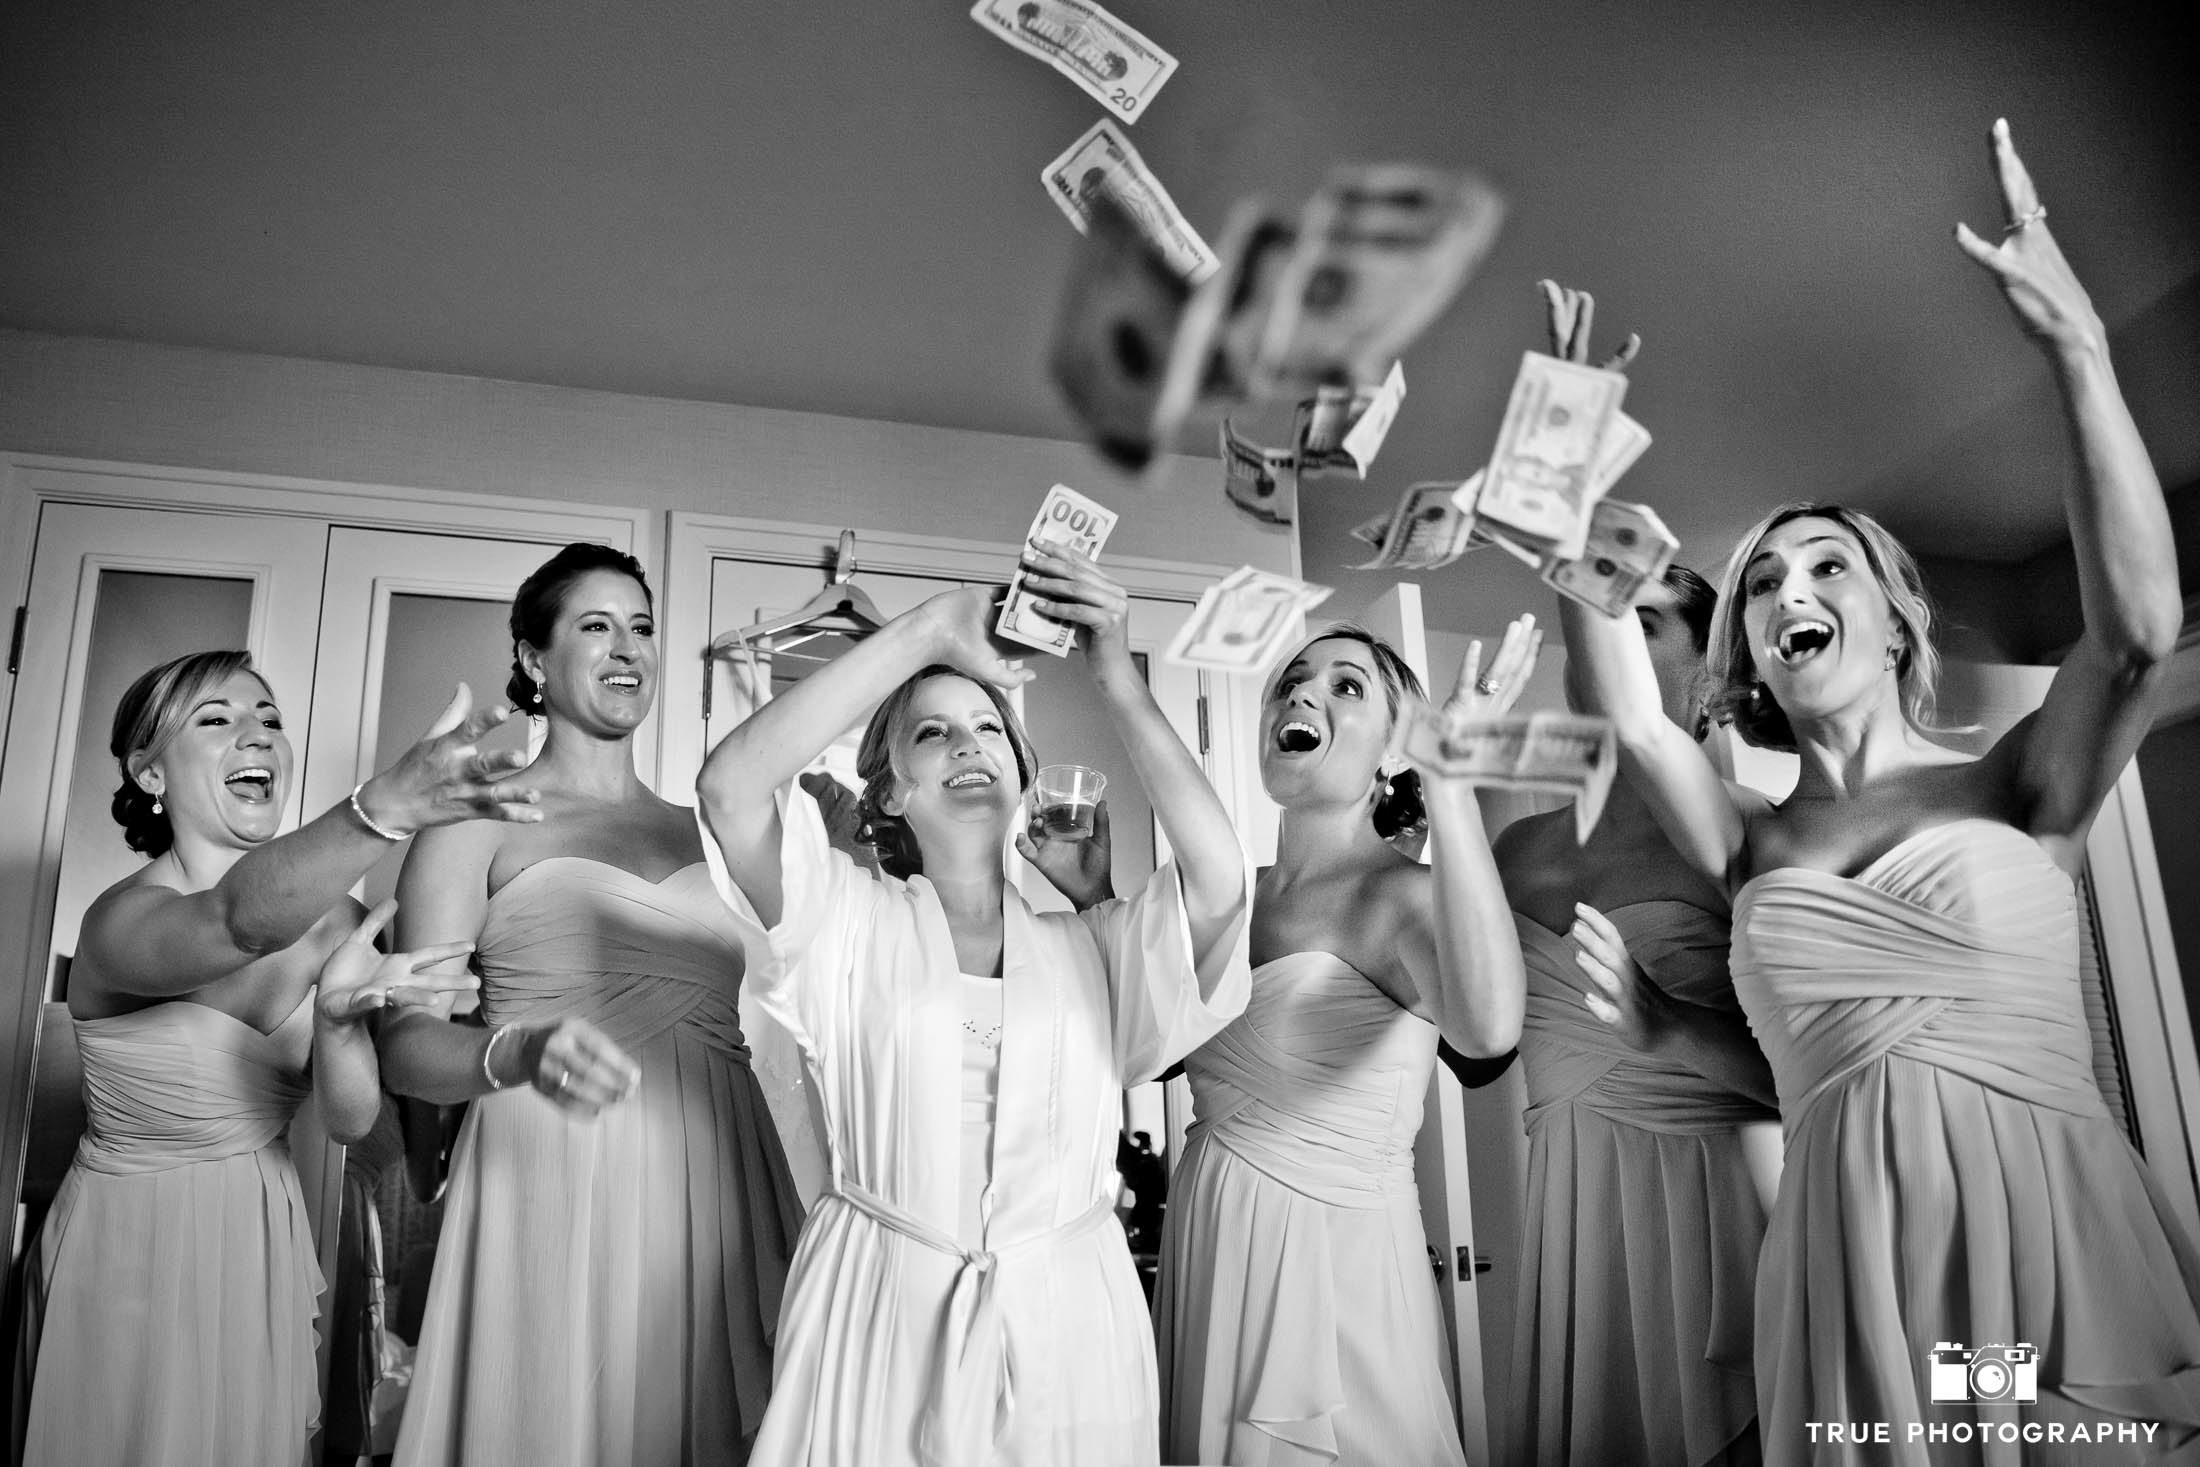 Bridesmaids make it rain as they toss money in the air before wedding ceremony